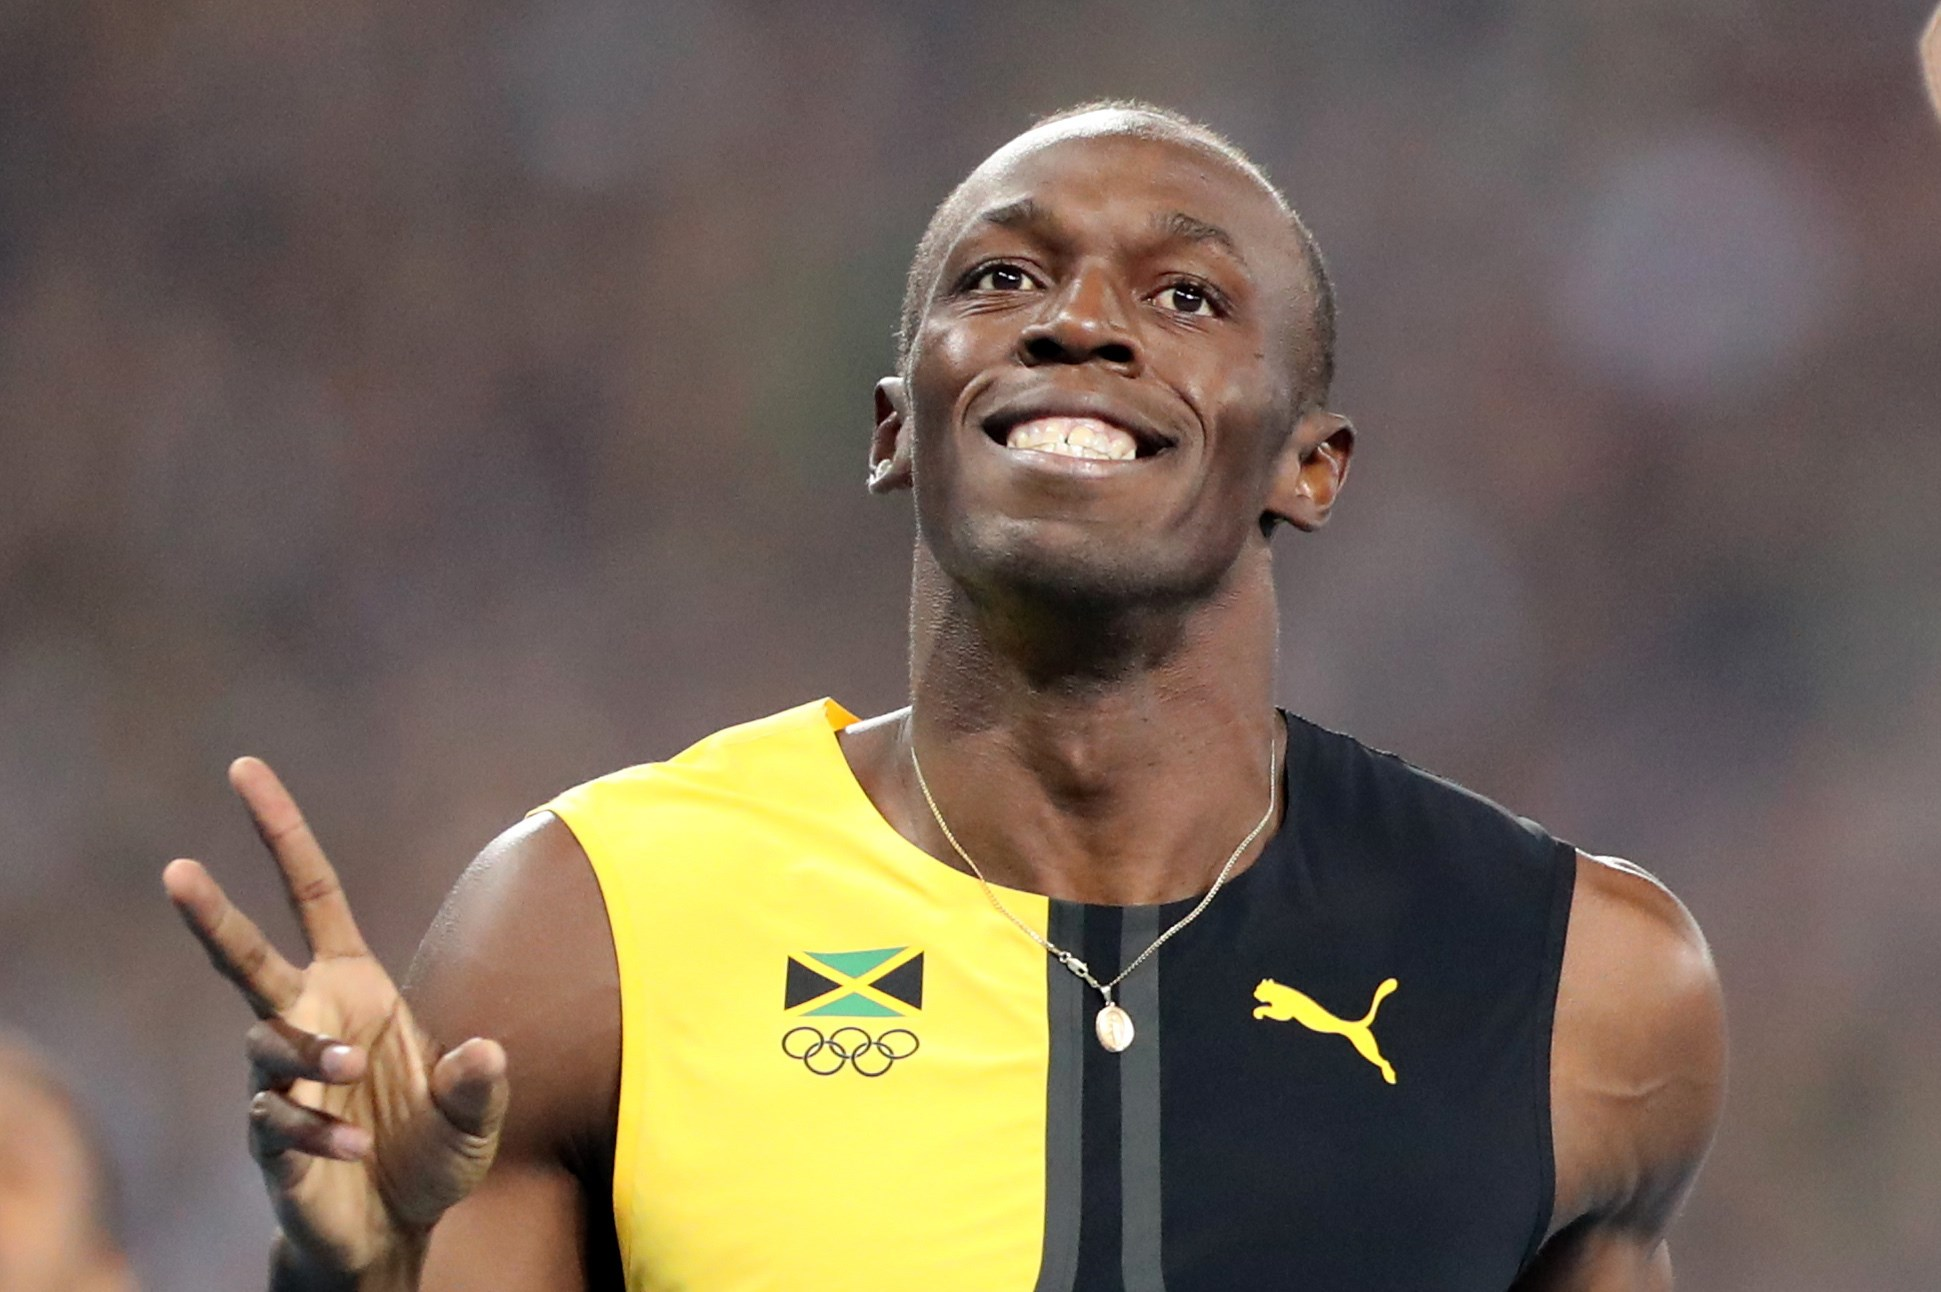 Jamaica's Usain Bolt celebrates as he crosses the line to win gold in the men's 100-meter final during the athletics competitions of the 2016 Summer Olympics at the Olympic stadium in Rio de Janeiro, Brazil, Sunday, Aug. 14, 2016. (AP Photo/Lee Jin-man)